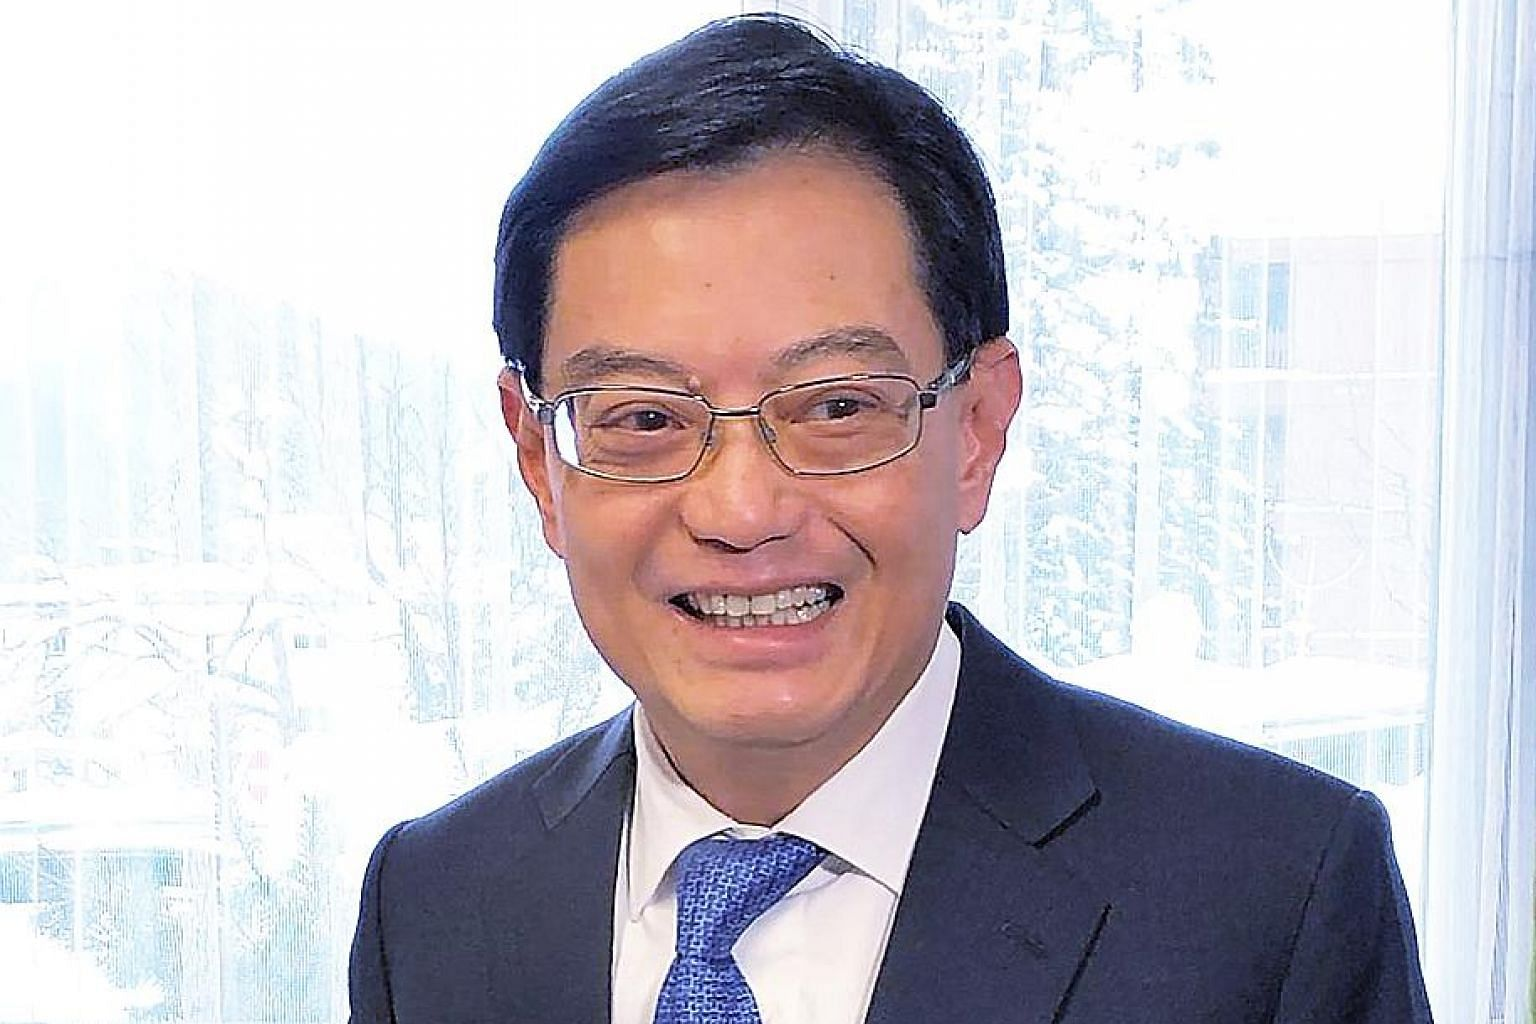 Talking to reporters yesterday, Finance Minister Heng Swee Keat said his key takeaway was that the confluence of technological advancements and globalisation was accelerating the pace of change, and many societies were not prepared for this.